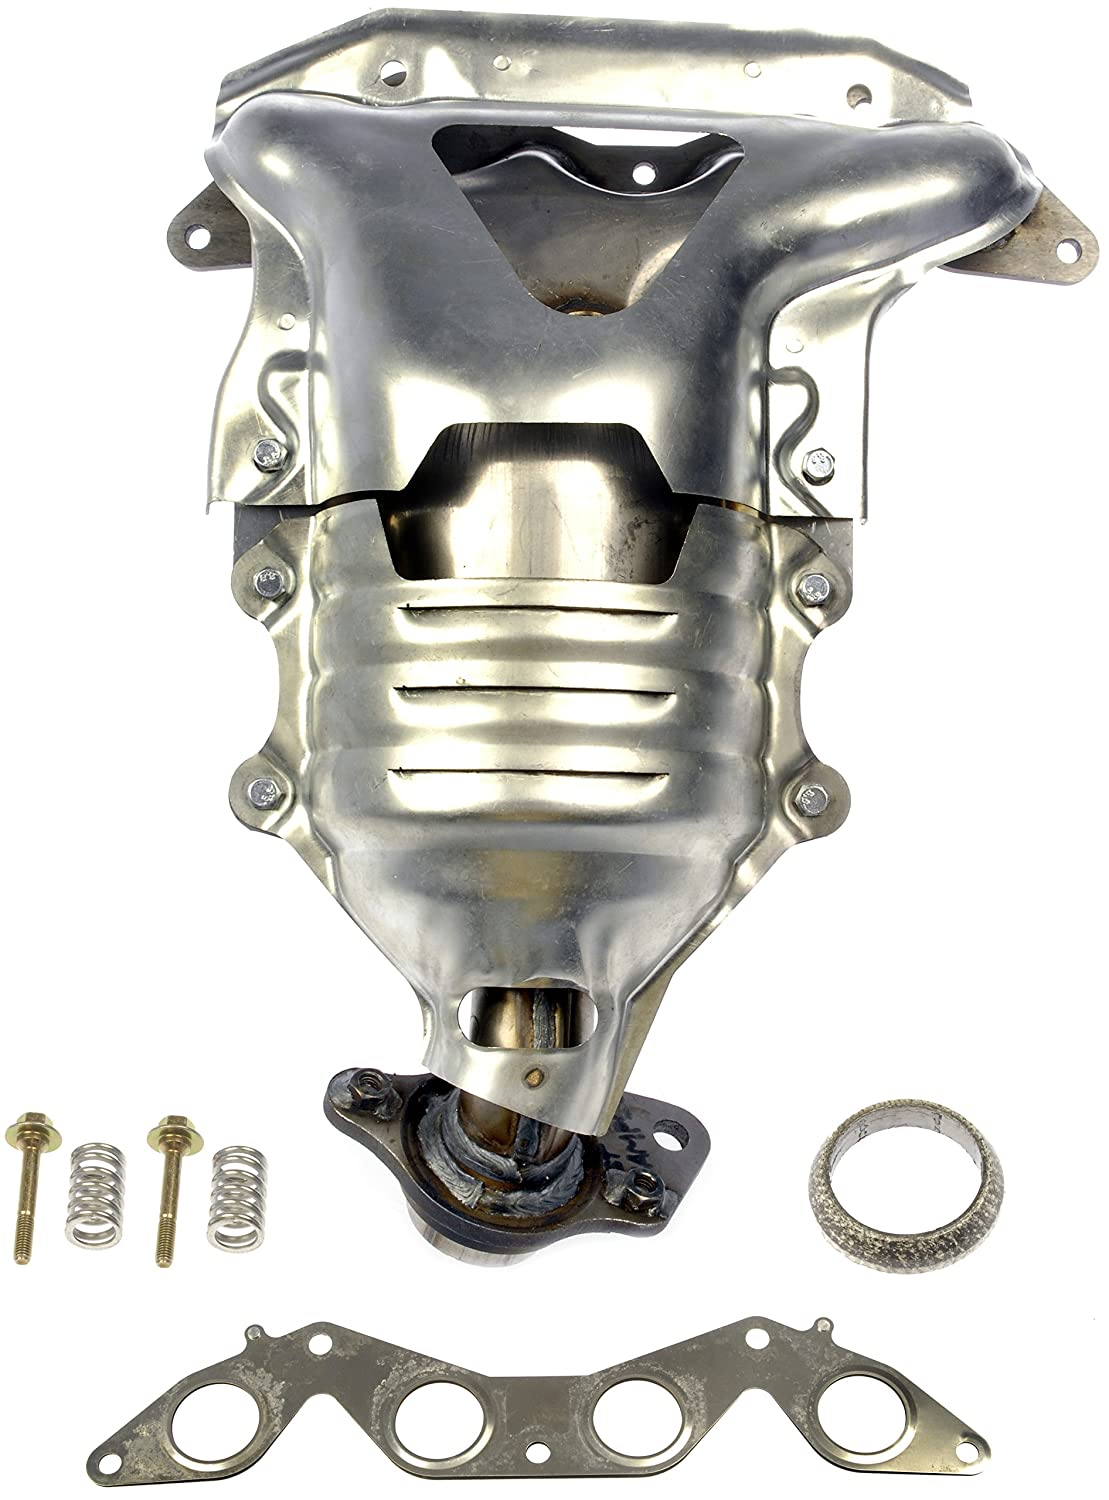 2002 Honda Civic Exhaust Diagram Wiring 1997 Engine Mounts Amazon Com Dorman 673 608 Manifold With Integrated Cr V System